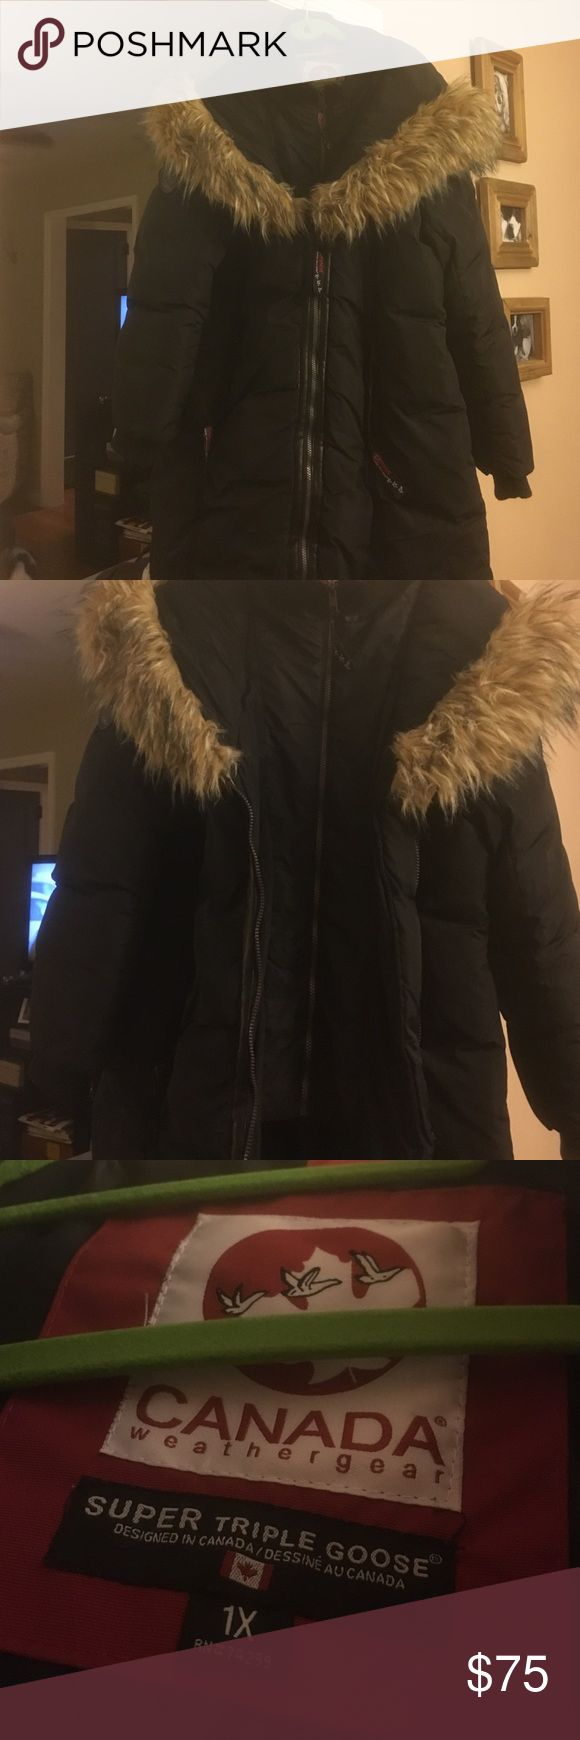 Canadian Goose Down Coat Black down coat with inner zip lining, very warm. Only worn a few times Canada Goose Jackets & Coats Puffers